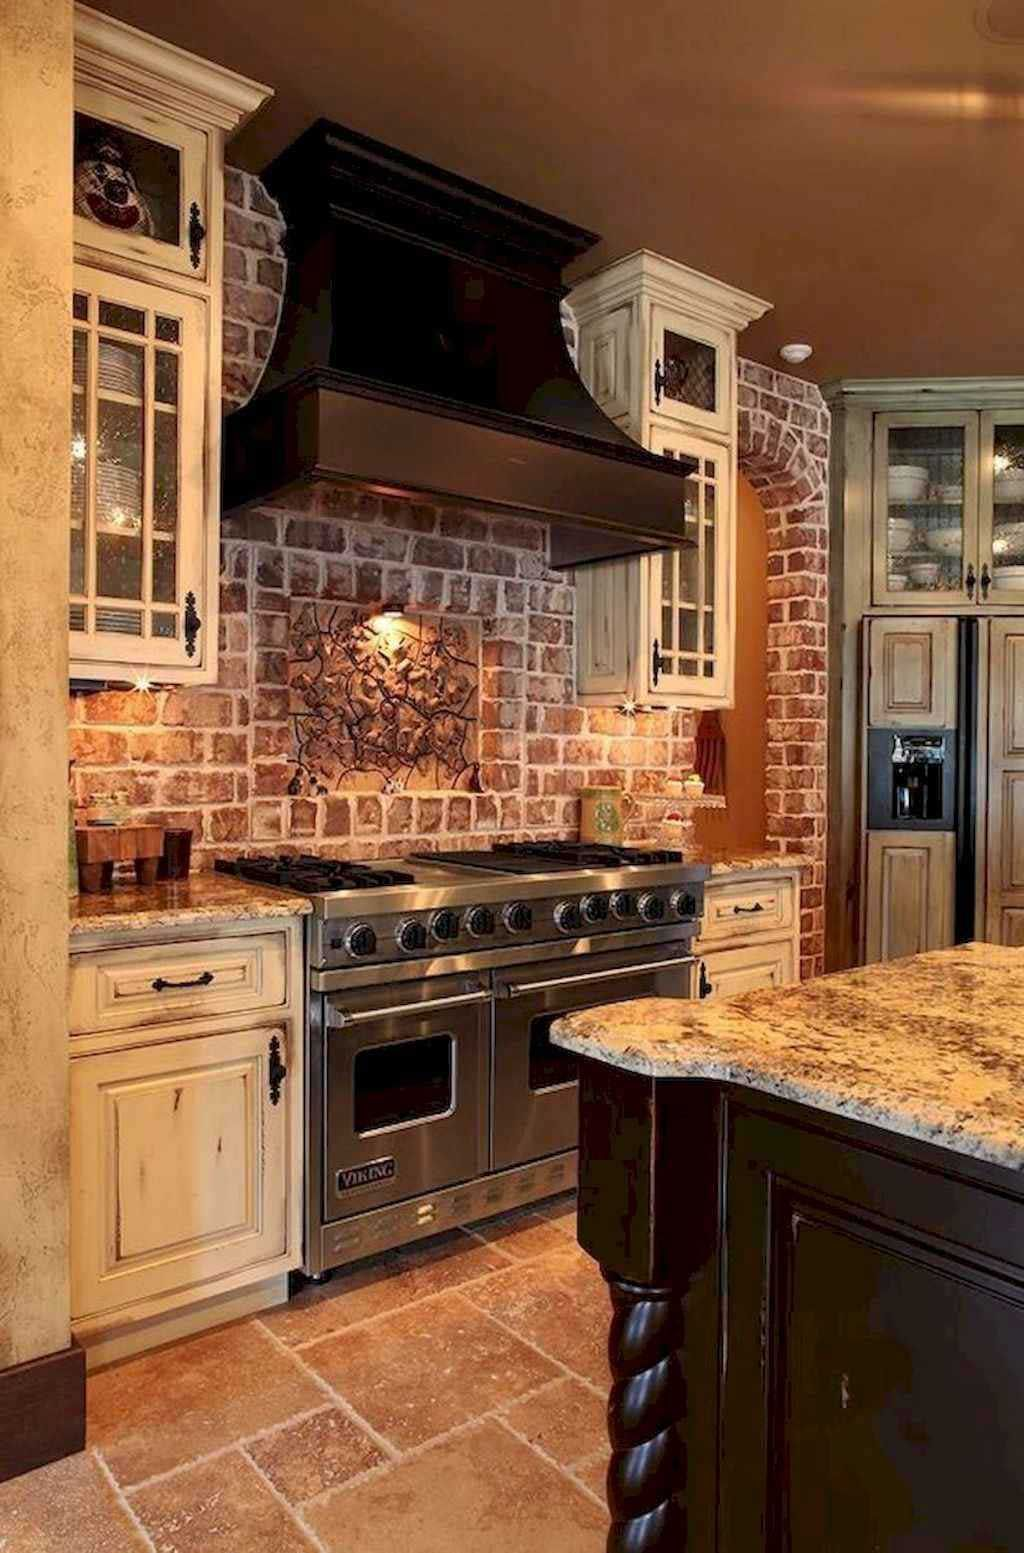 farmhouse kitchen backsplash design ideas in 2020 on farmhouse kitchen backsplash id=67085